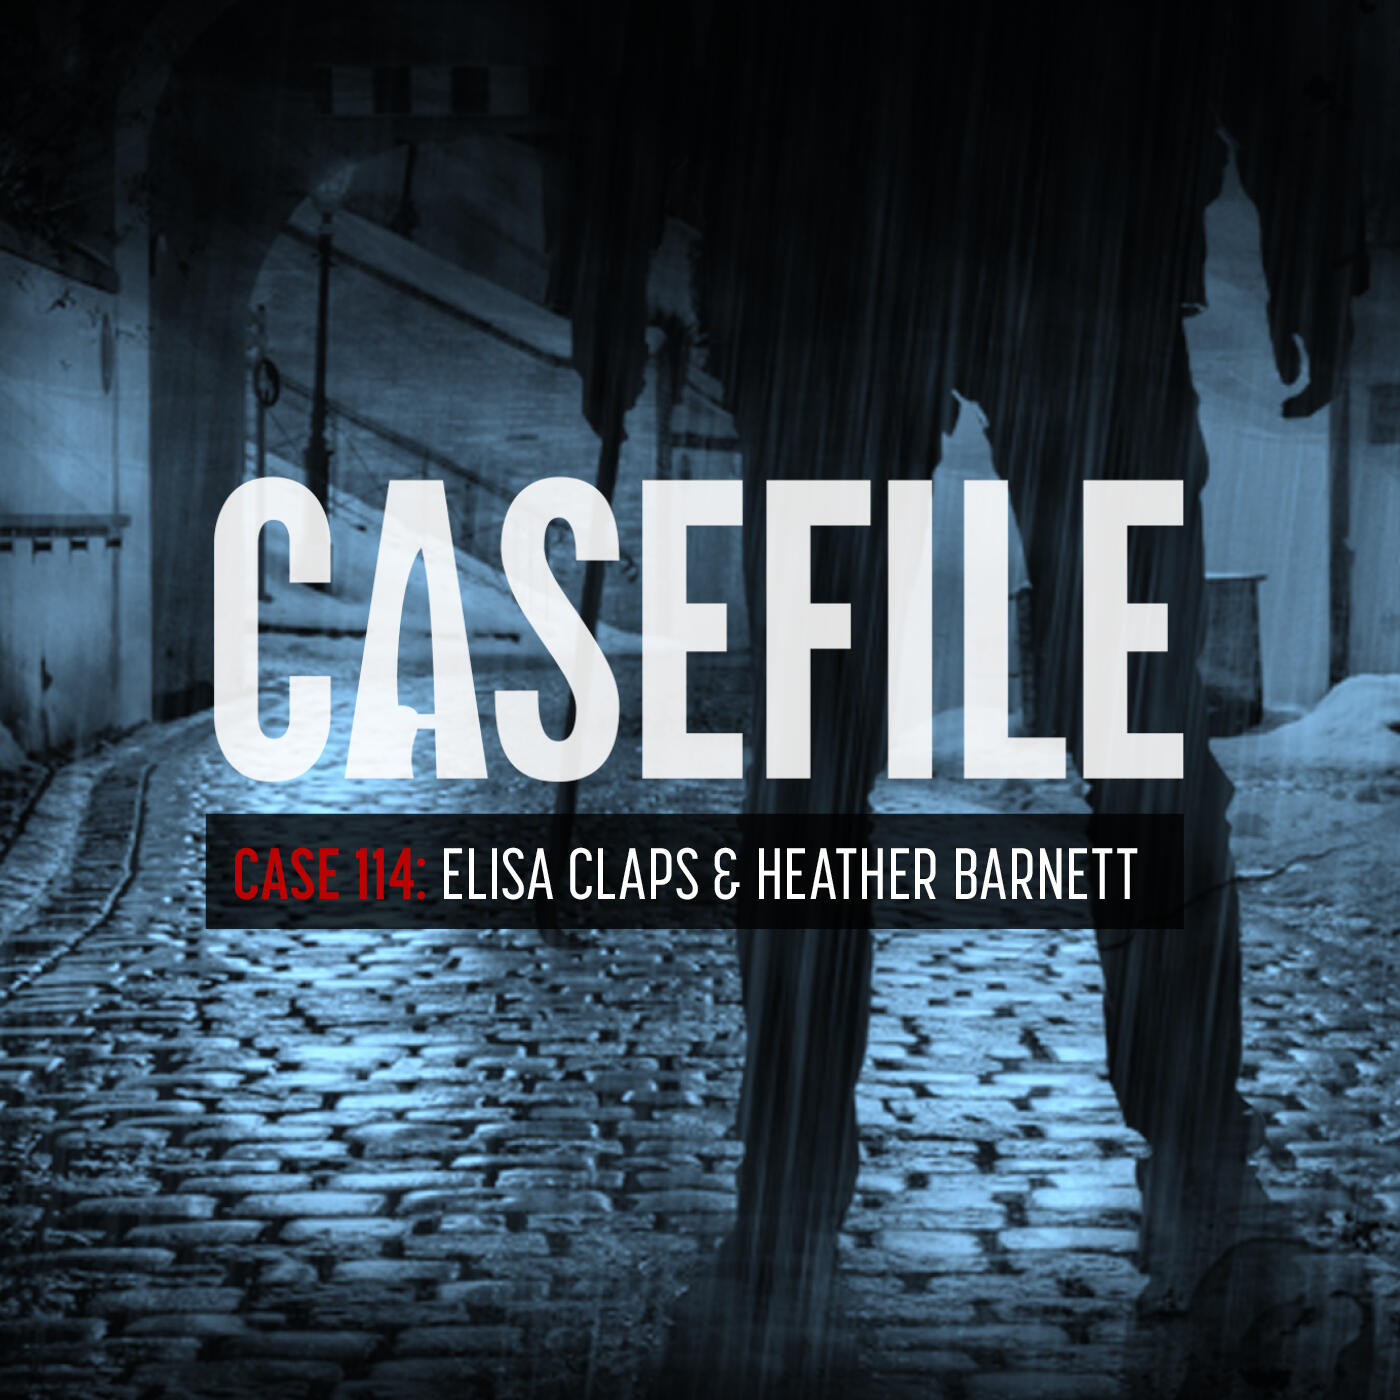 Case 114: Elisa Claps & Heather Barnett